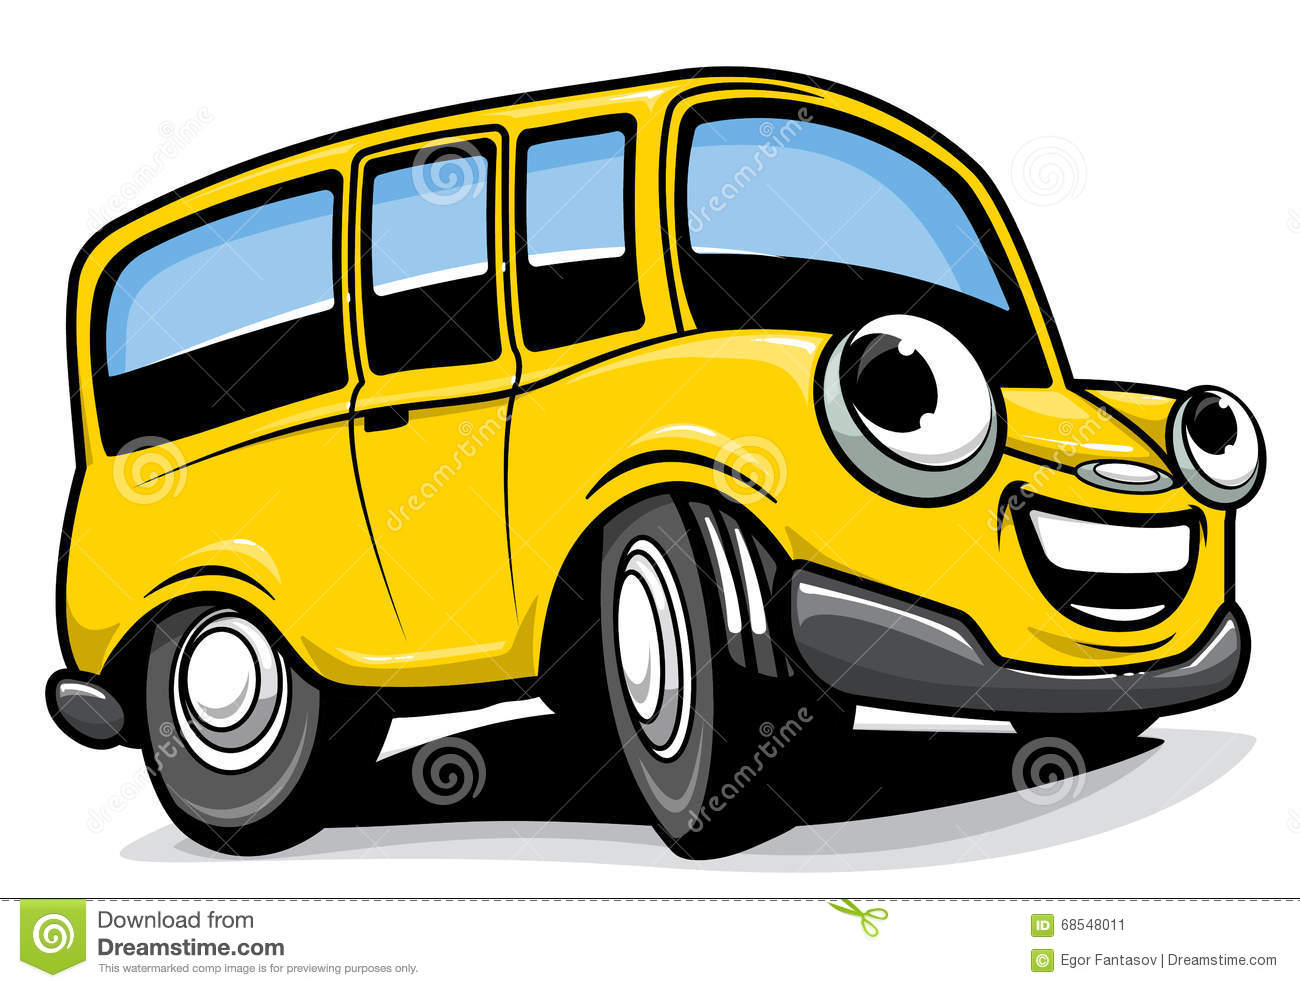 Bus de dessin anim illustration de vecteur image 68548011 - Dessin de transport ...